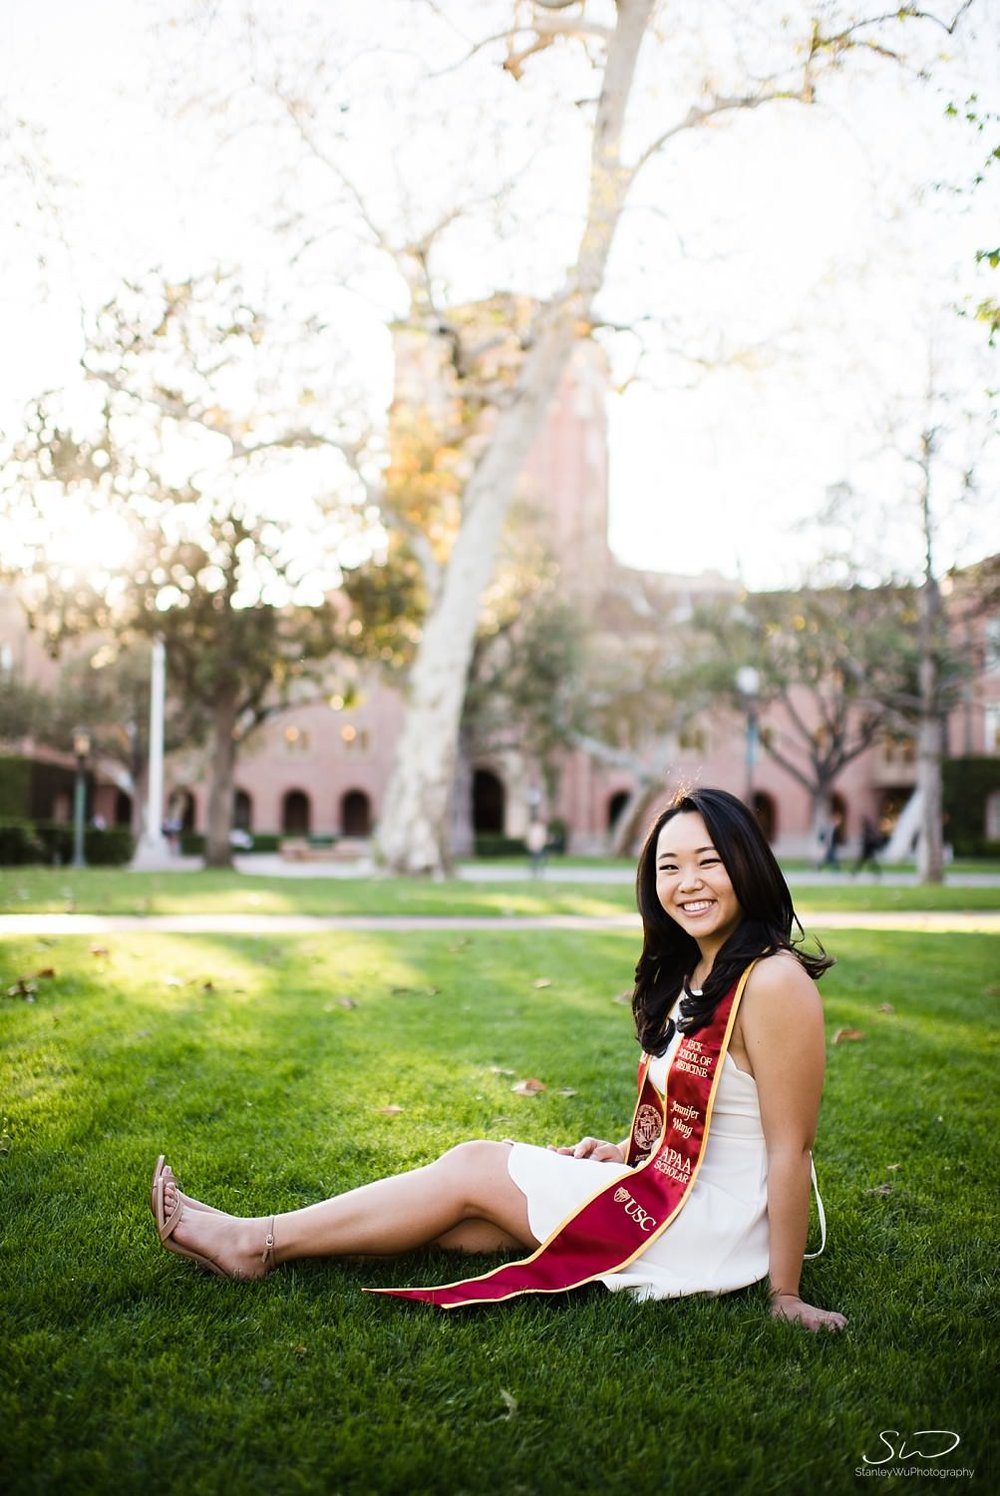 los-angeles-usc-graduation-senior-portraits_0070.jpg